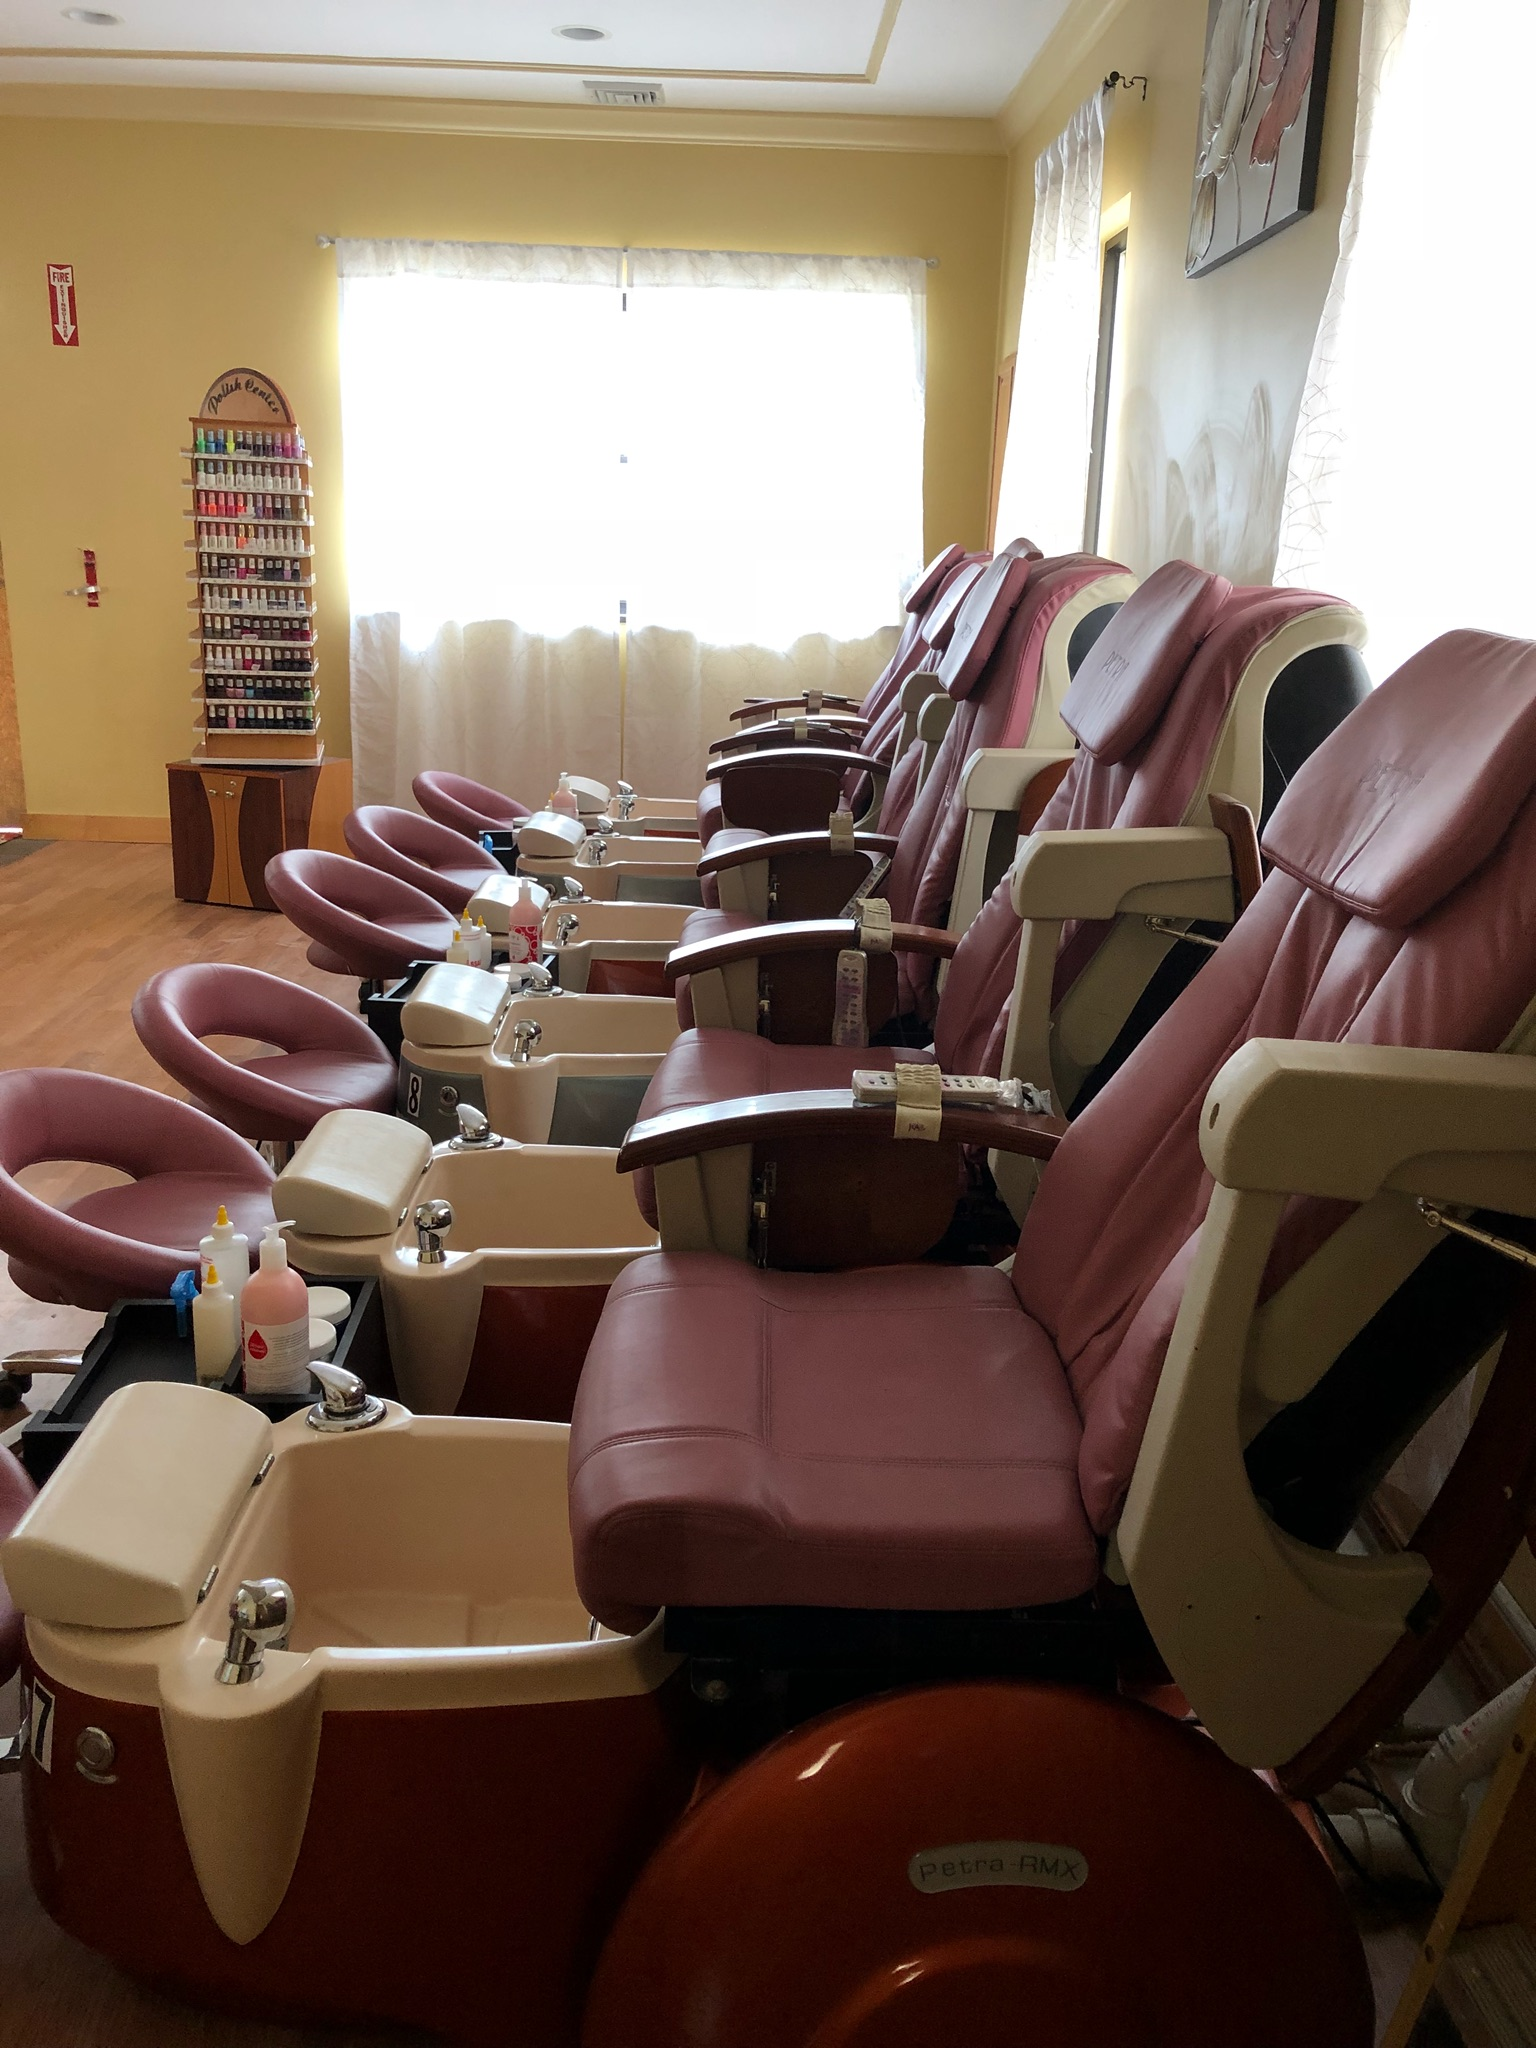 Selling 6 new Pedicure chair because it is not up to my city standards